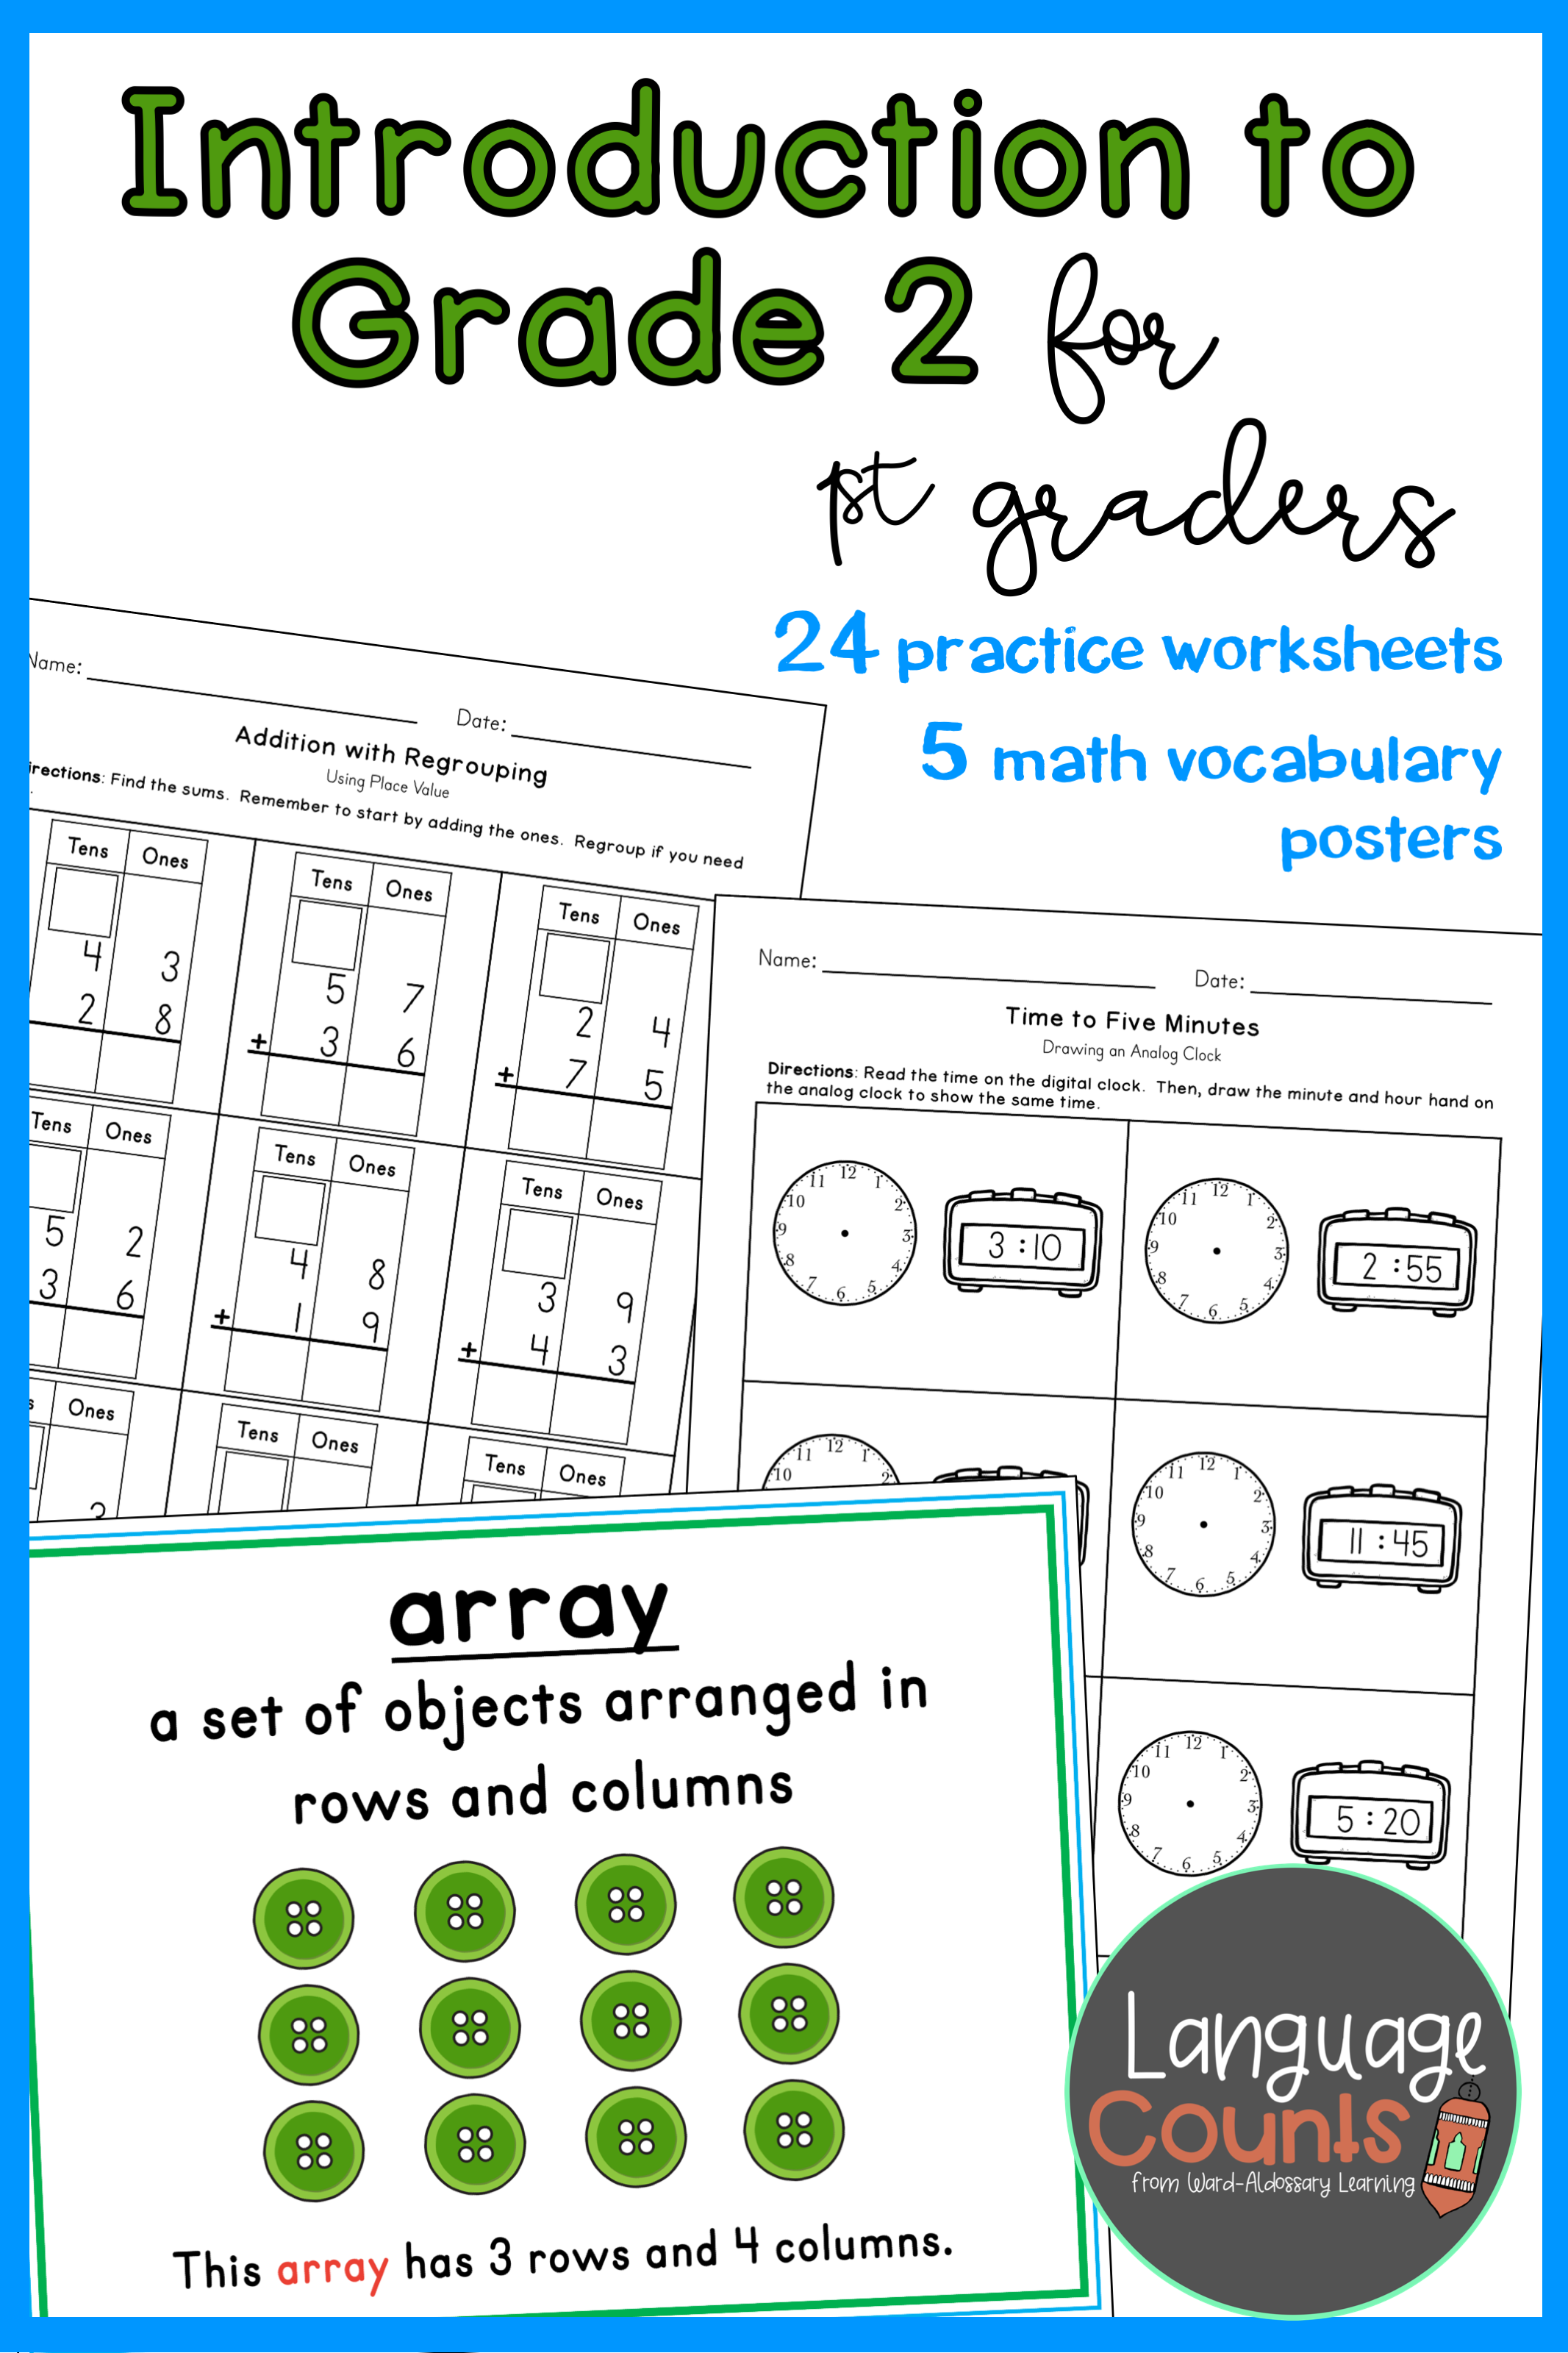 small resolution of 30 Grade 1 enVision math 2.0 Resources ideas   envision math